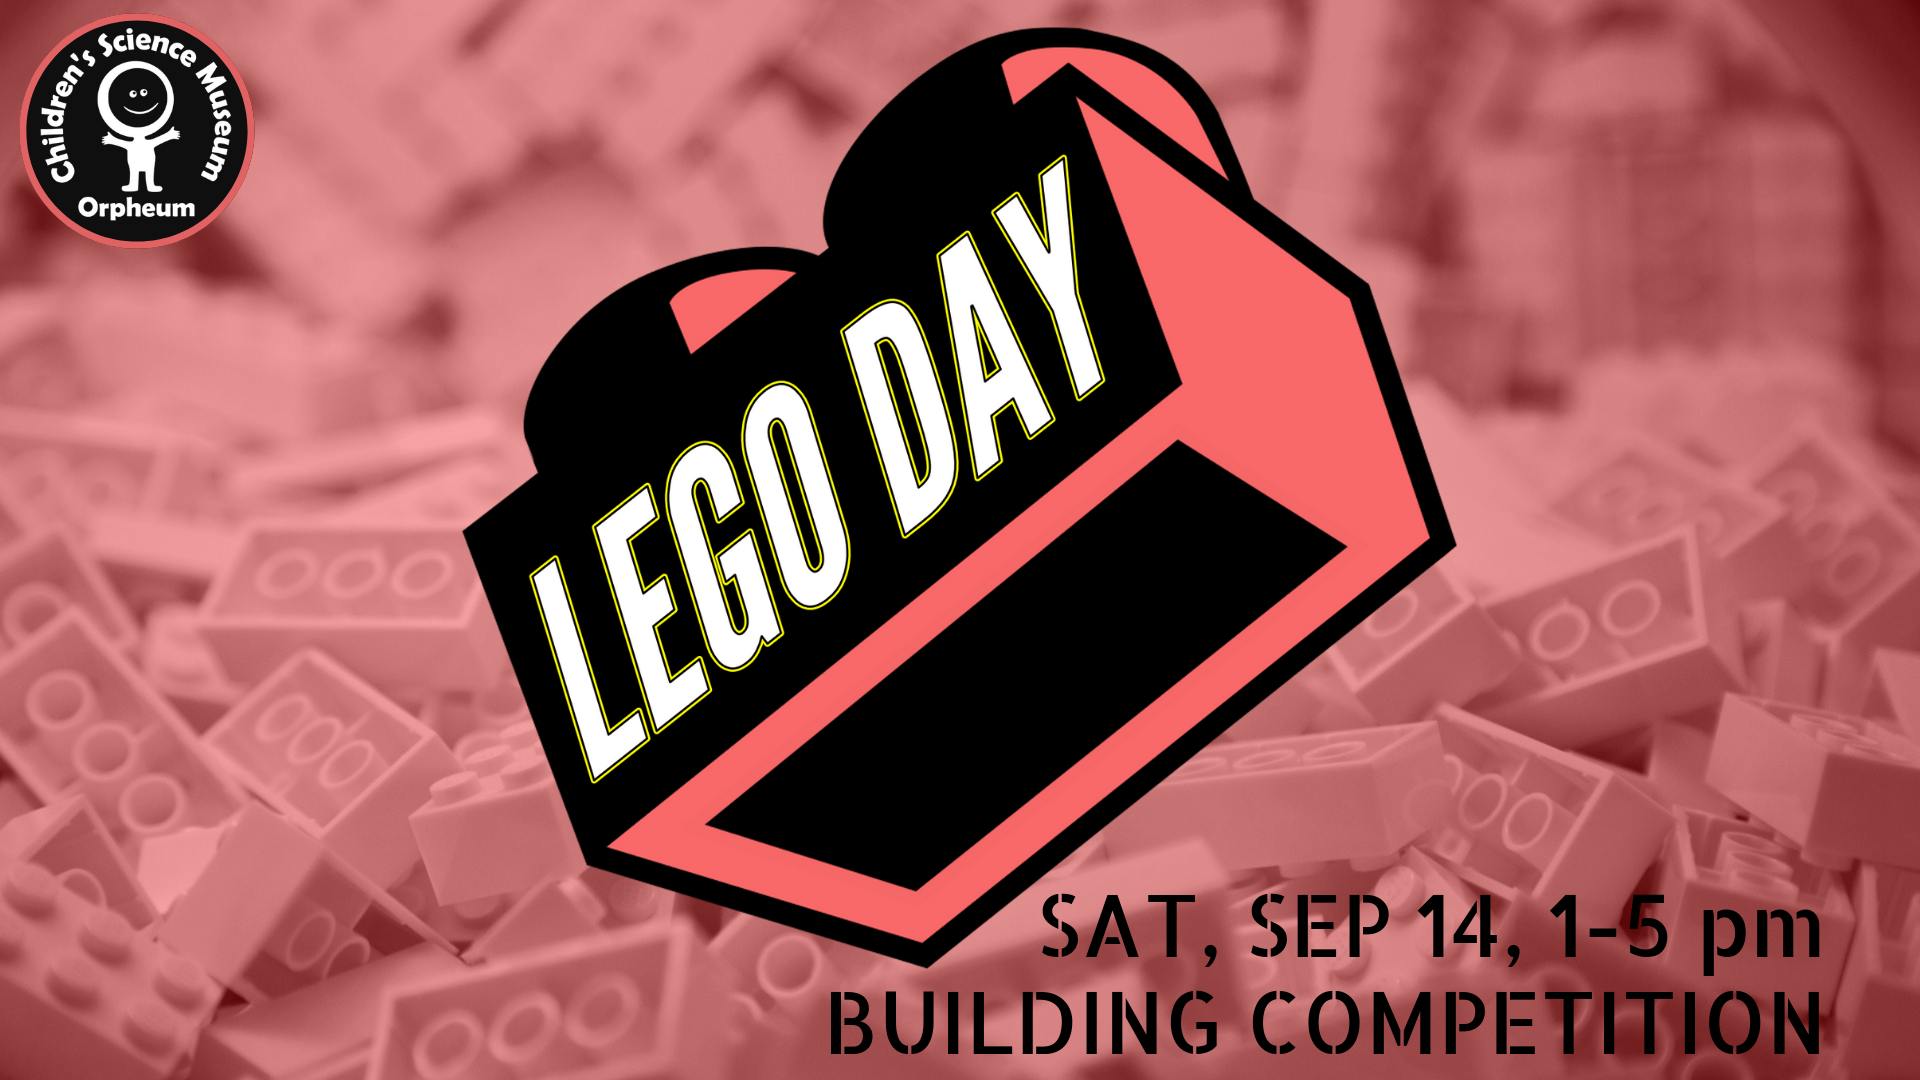 PPT - LEGO Day 2019